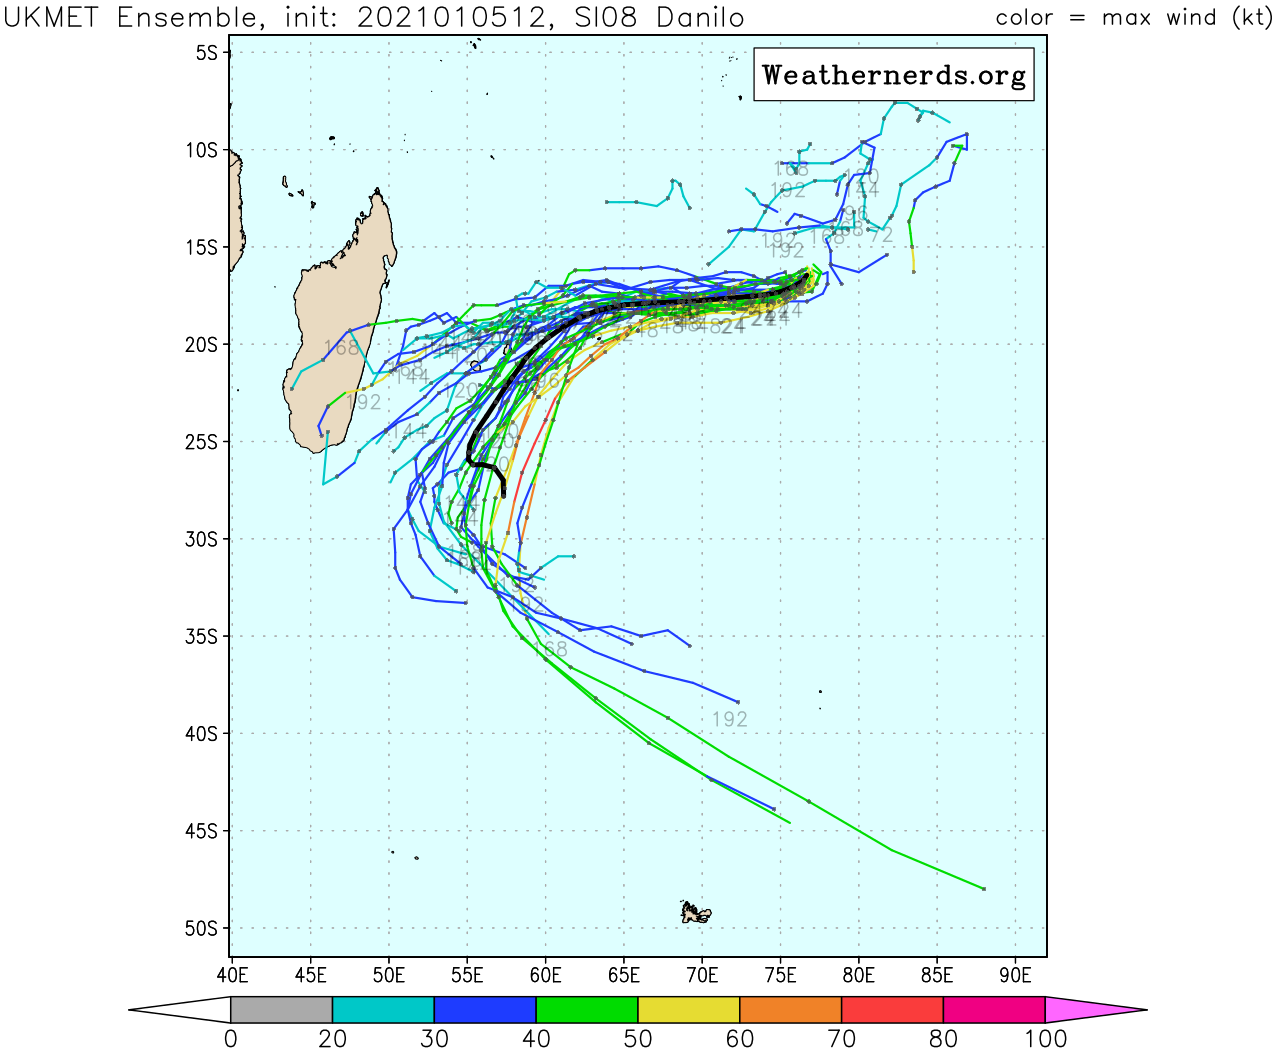 TC 08S.TRACK AND INTENSITY GUIDANE. UKMET IS STILL MORE AGGRESSIVE AND MORE POLEWARD.